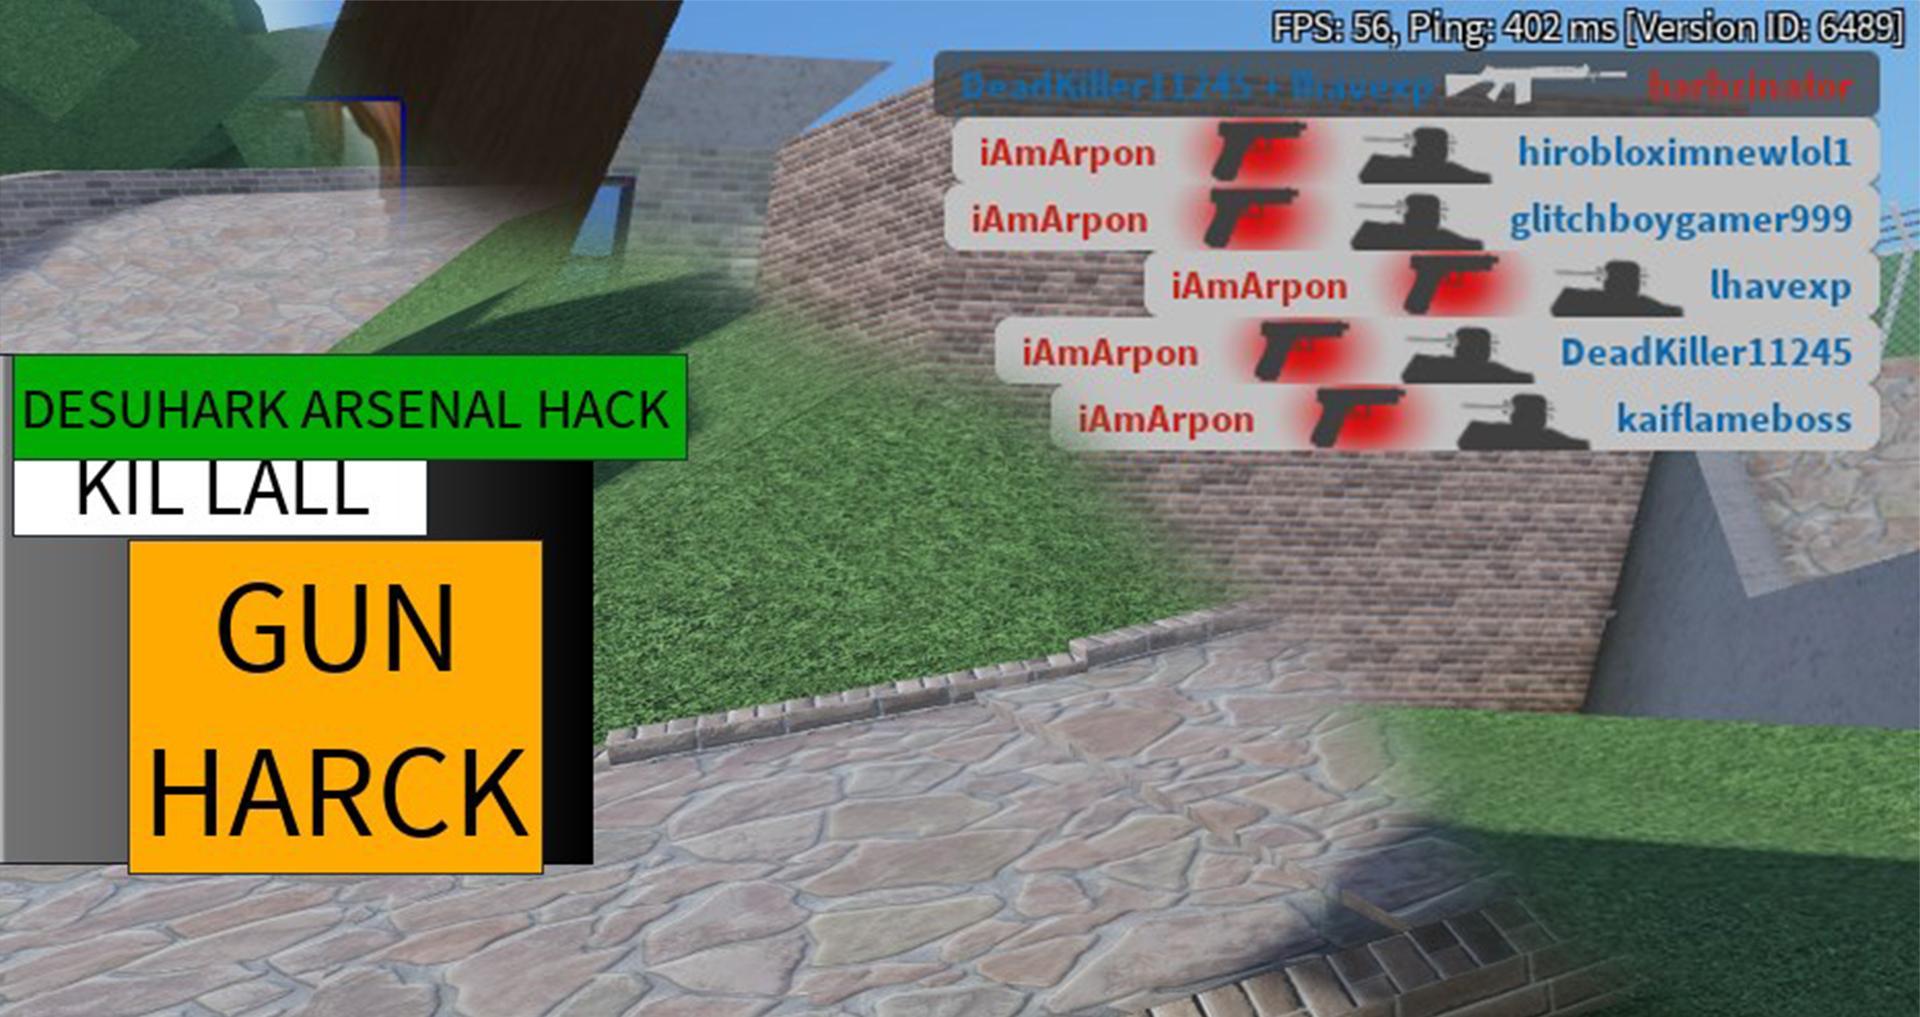 Roblox Hack Script Arsenal Arsenal Desuhark Kill All Gun Hack Best Roblox Exploit Scripts